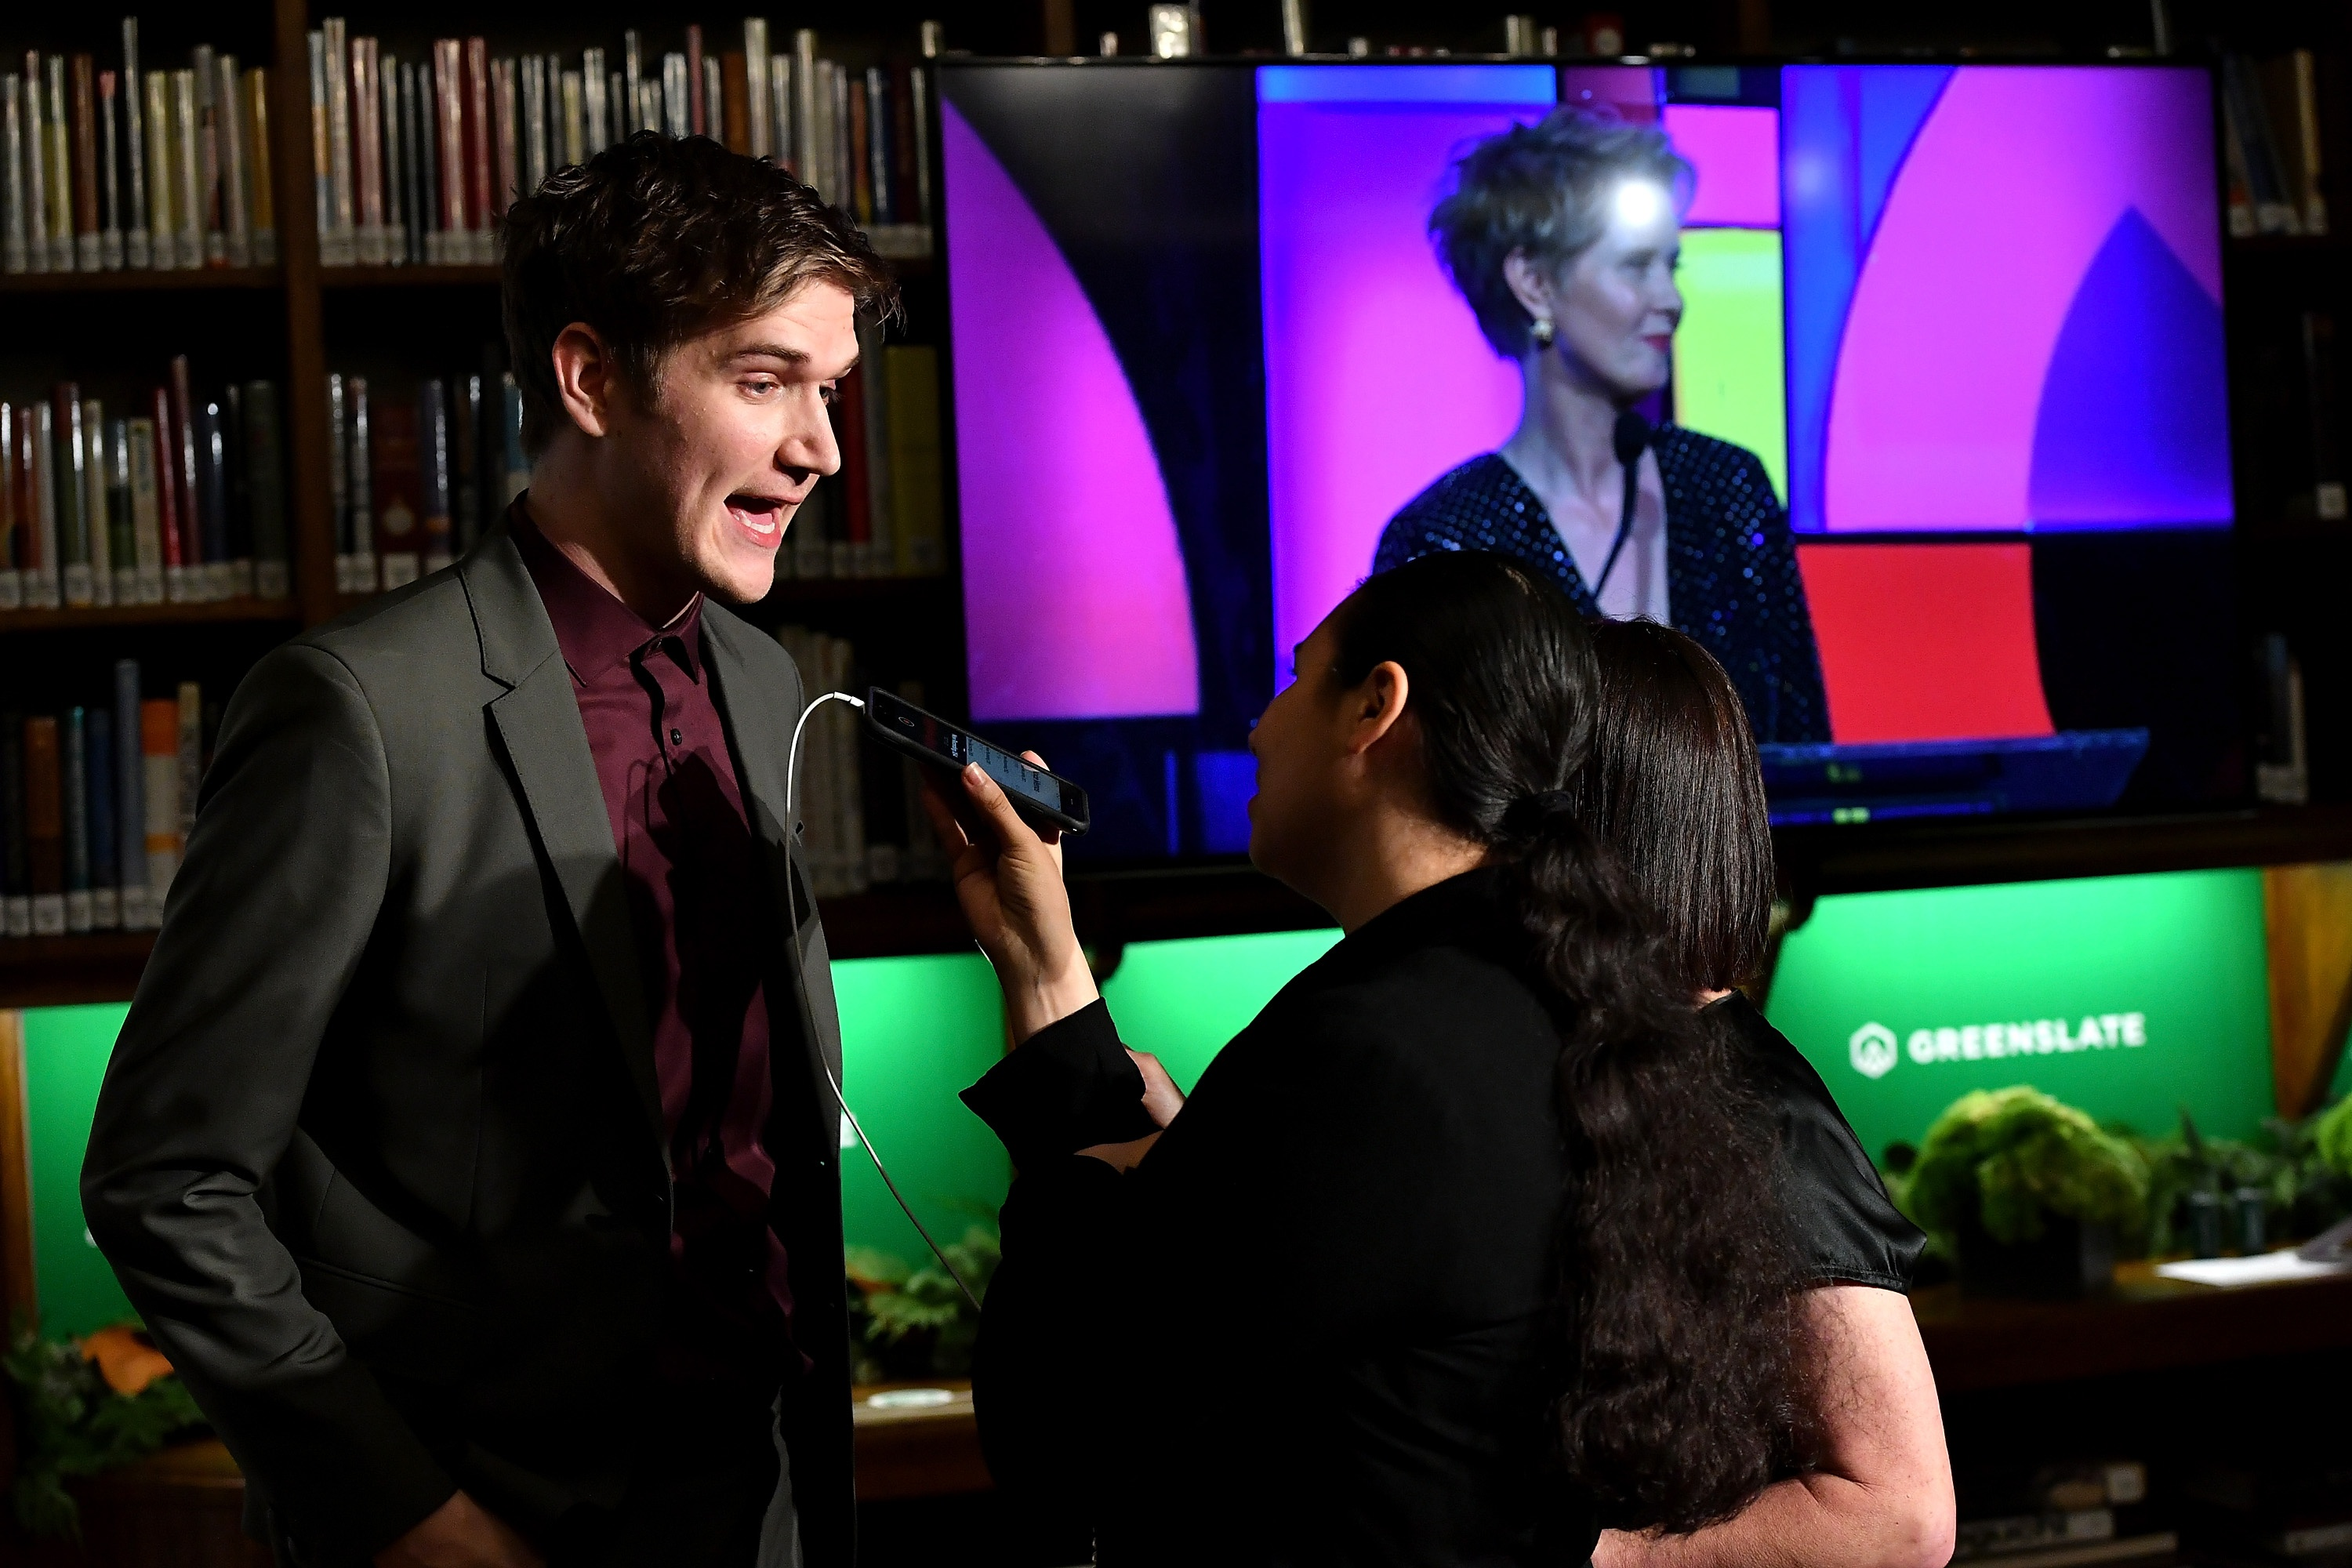 Bo Burnham backstage in the GreenSlate Greenroom during IFP's 28th Annual Gotham Independent Film Awards at Cipriani, Wall Street on November 26, 2018 in New York City.